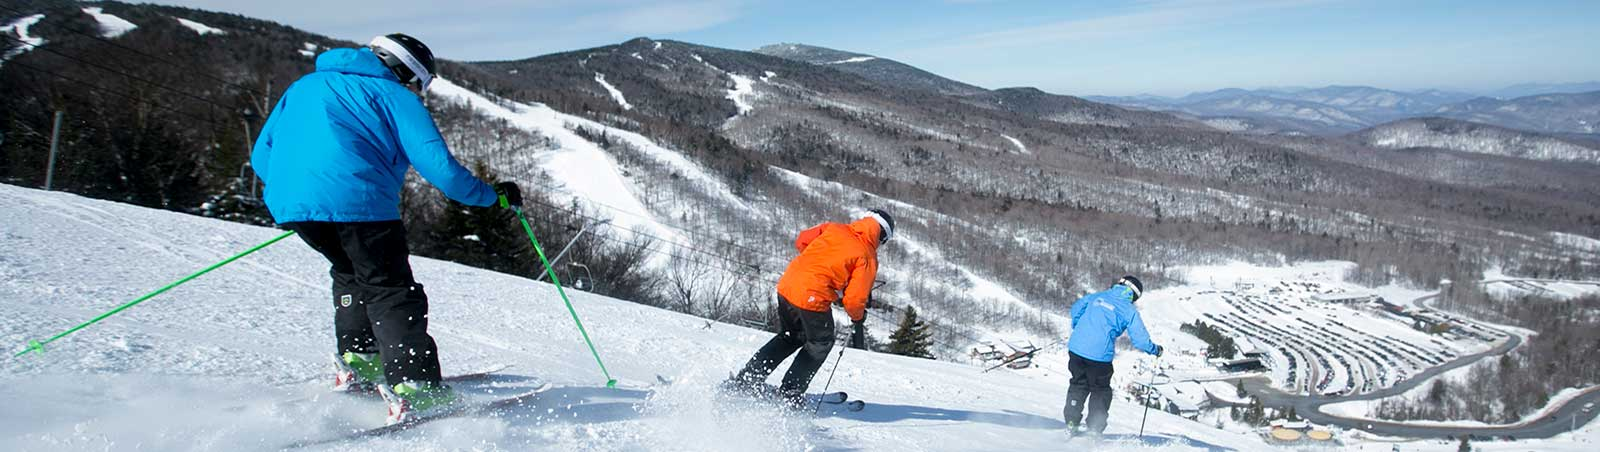 Killington USA Ski Resort with inspireski